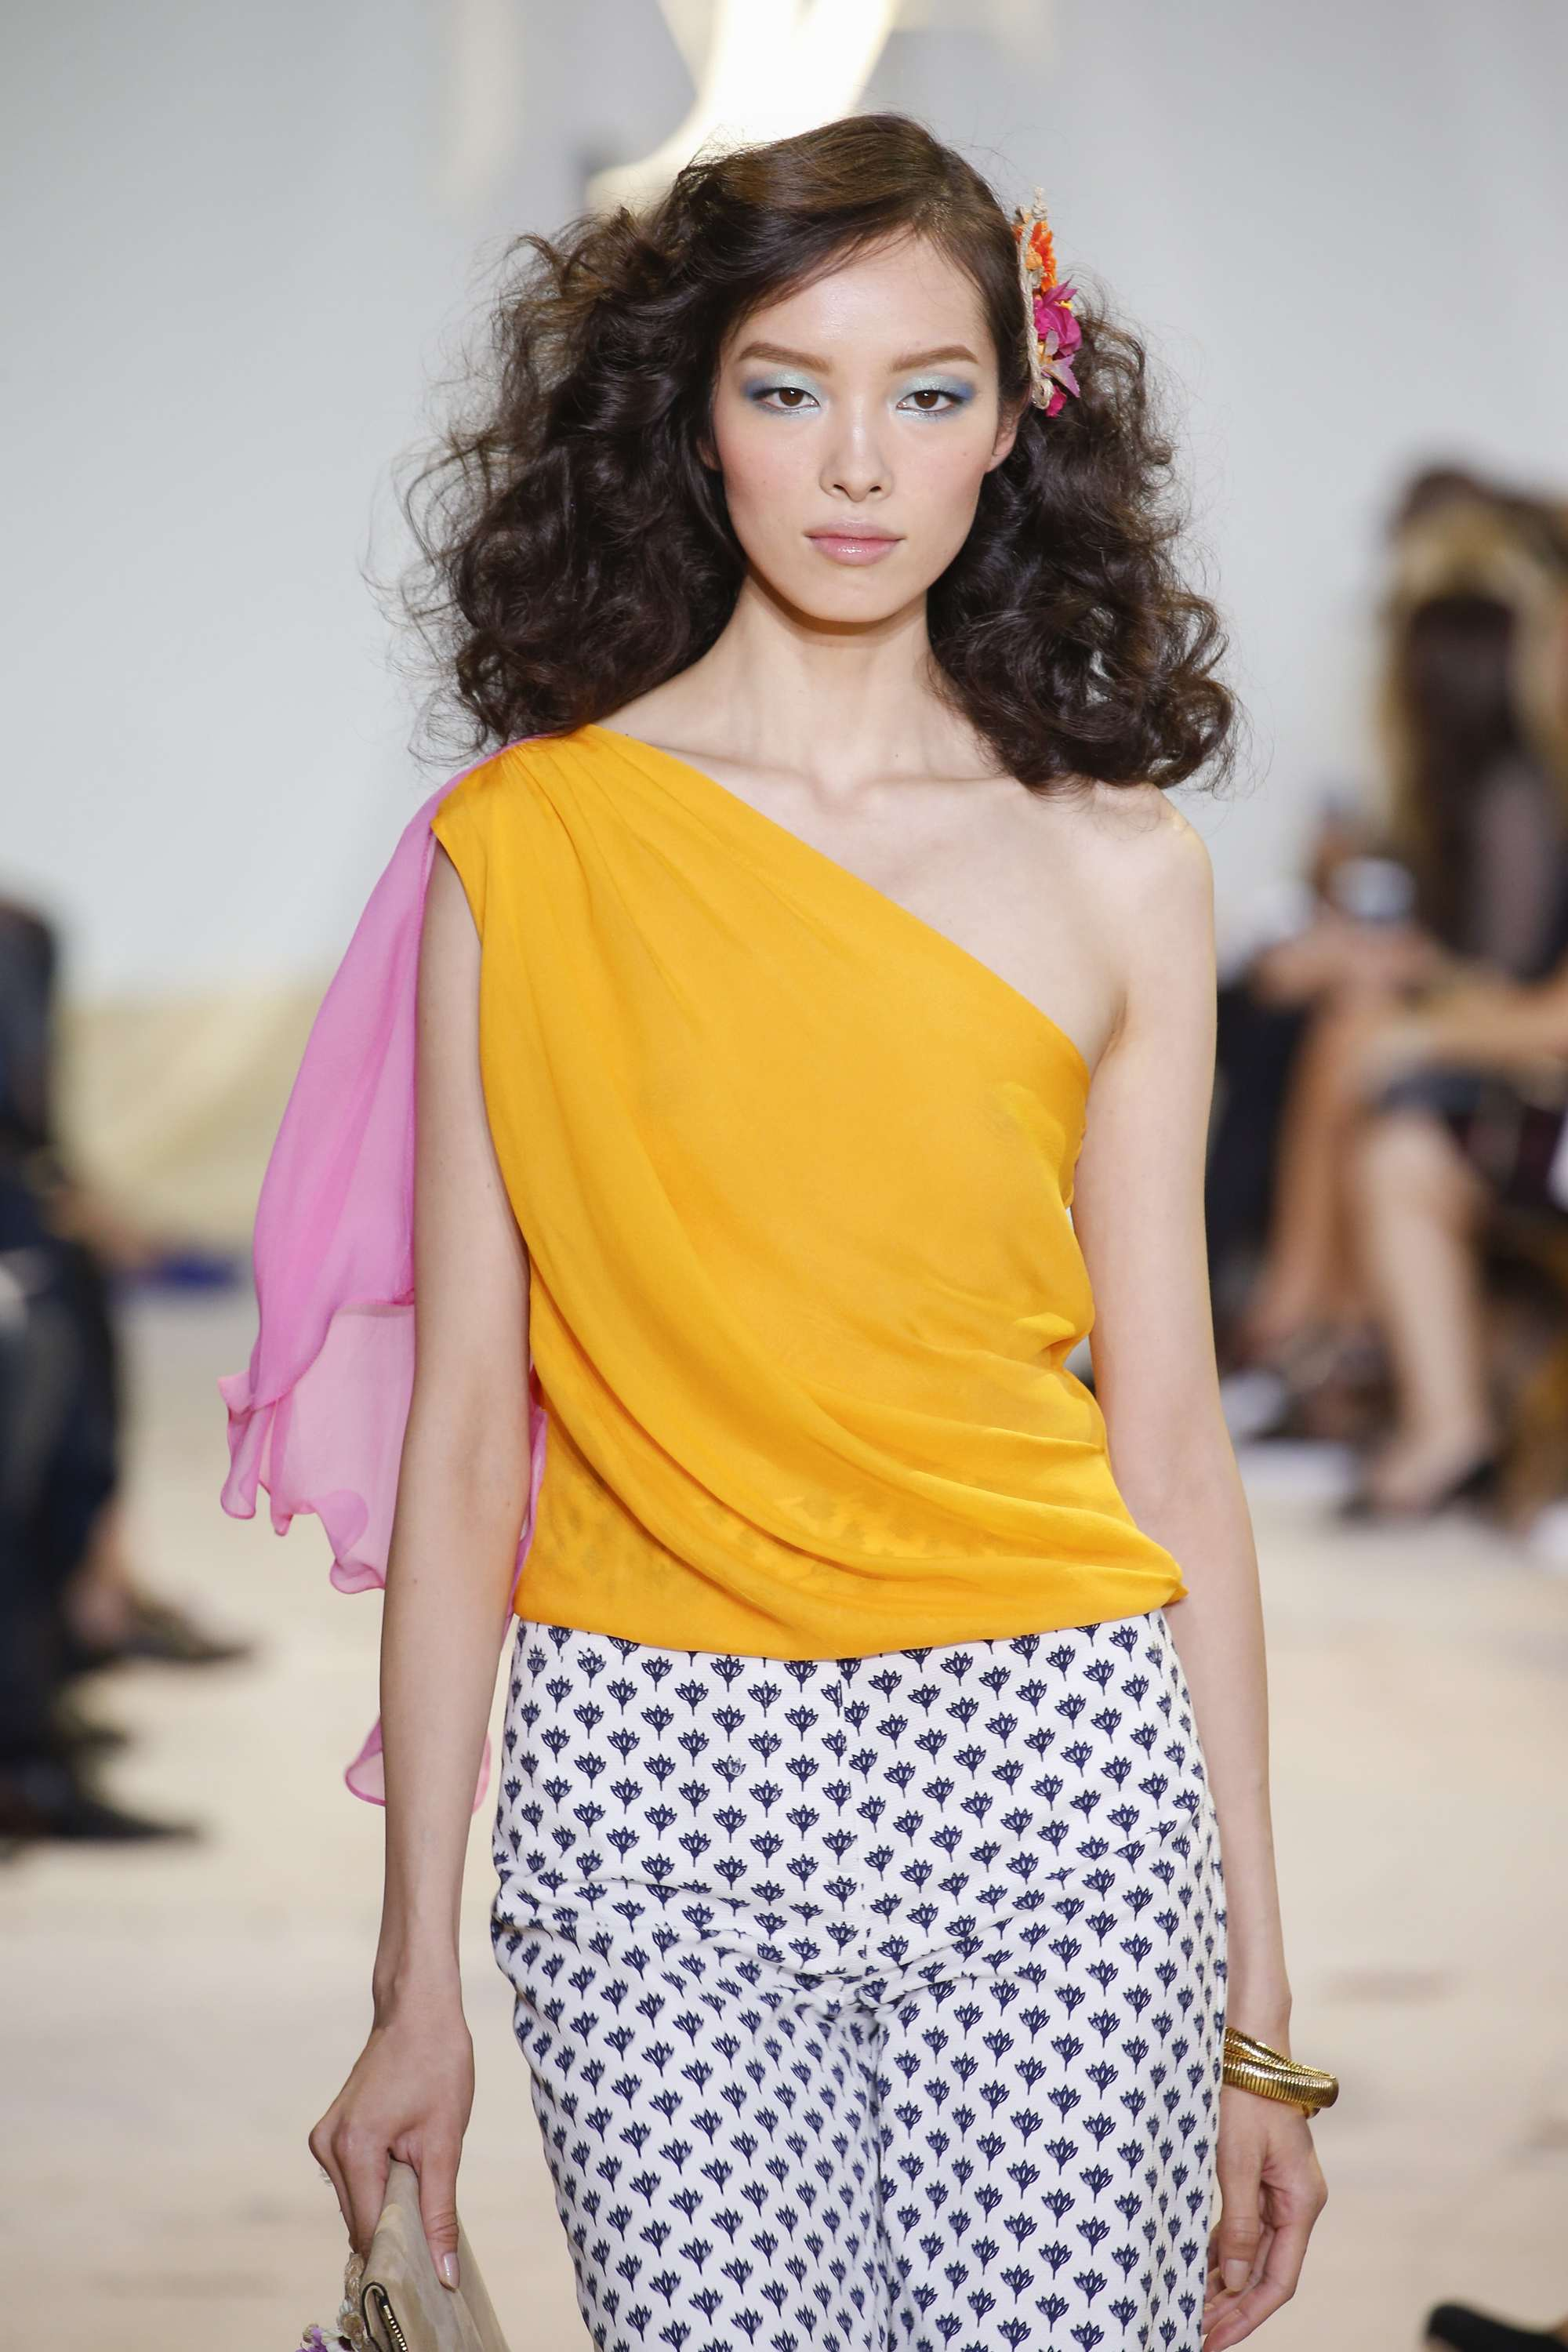 DVF tight waves hairstyle on brunette model. Indigital